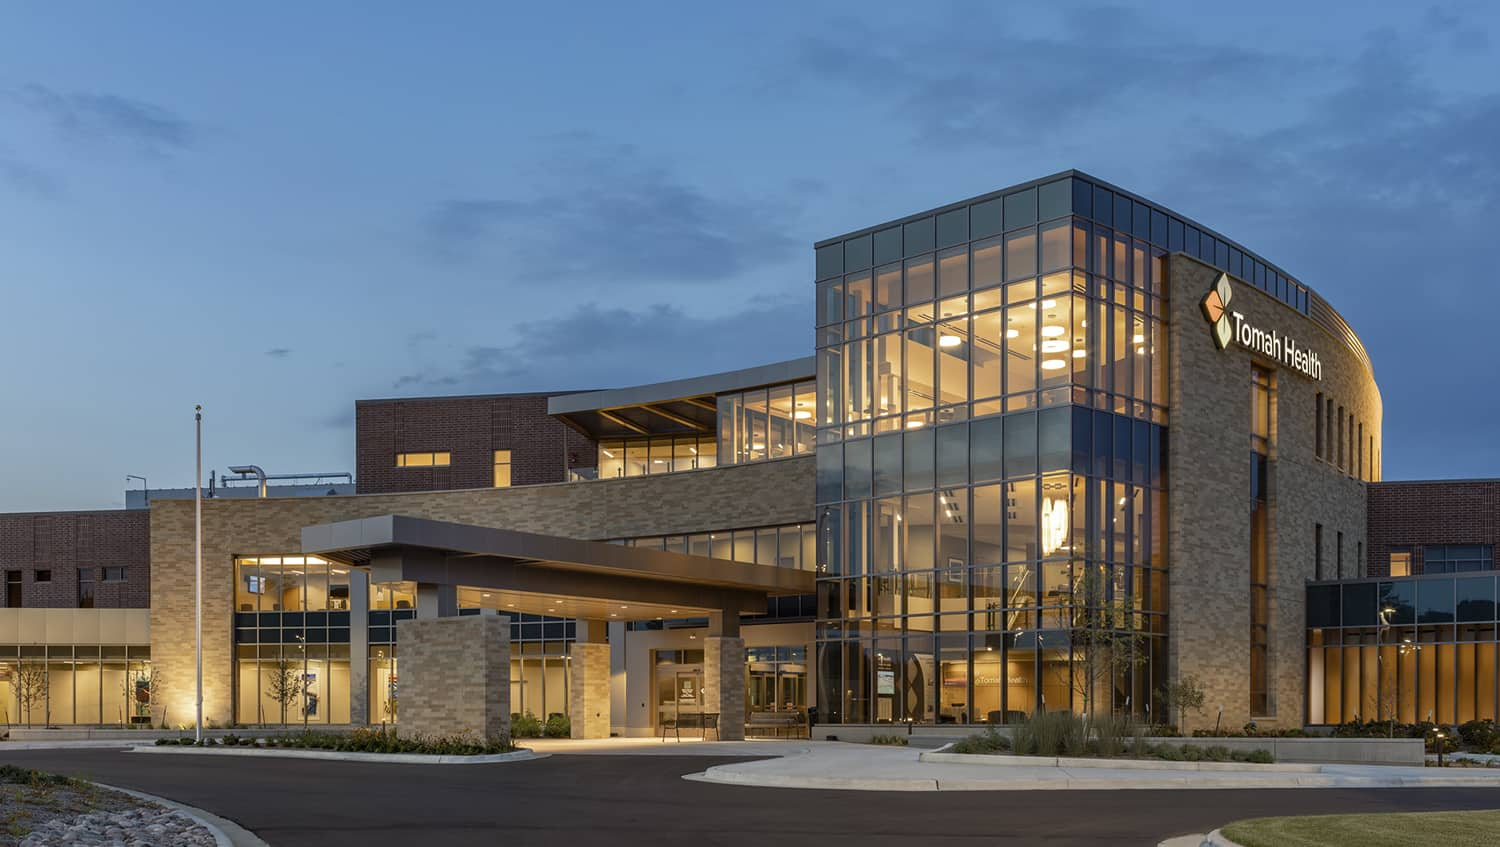 Tomah Health Replacement Critical Access Hospital Health and Wellness Campus